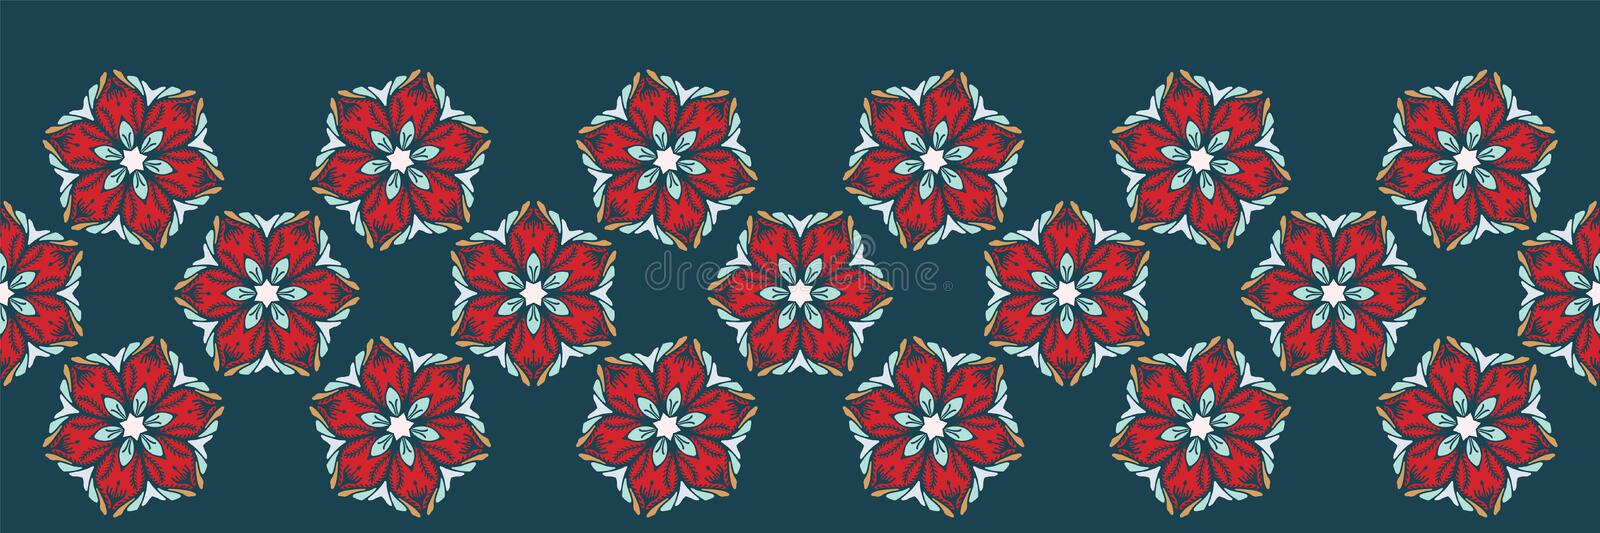 Hand drawn abstract Christmas flower border pattern. Stylized poinsettia floral on green background. Winter holiday ribbon trim. Abstract Christmas flower royalty free illustration